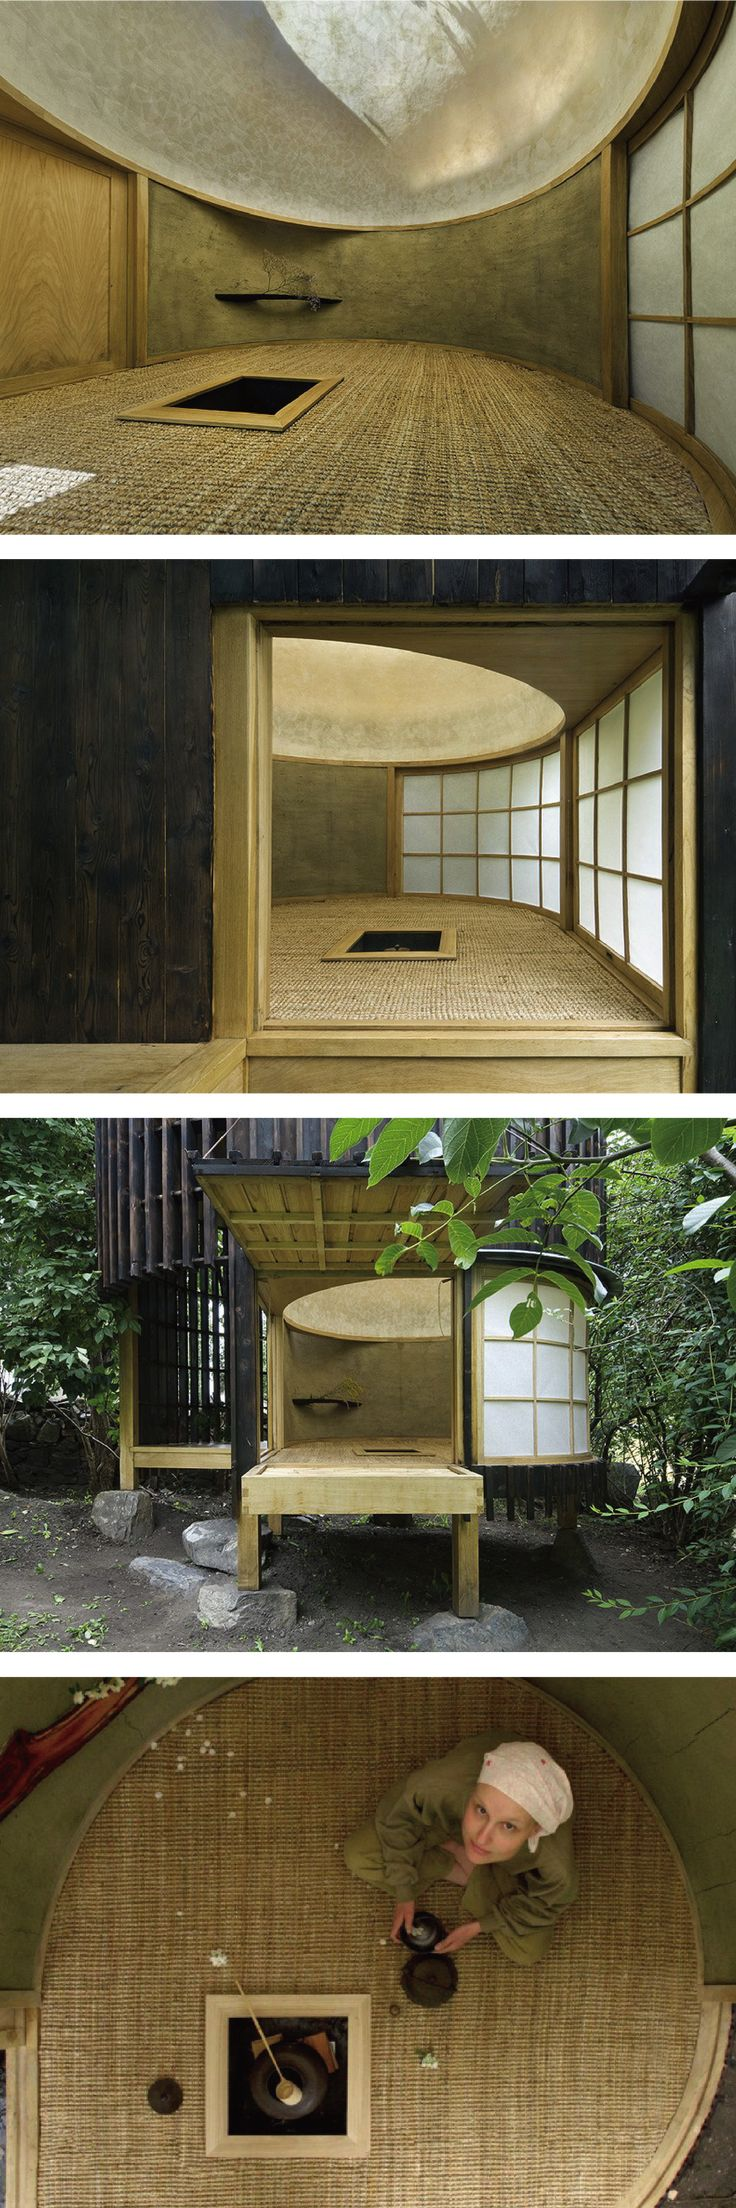 best 25 salon japonais ideas on pinterest le salon idees japon teahouse in the garden japanese architecture